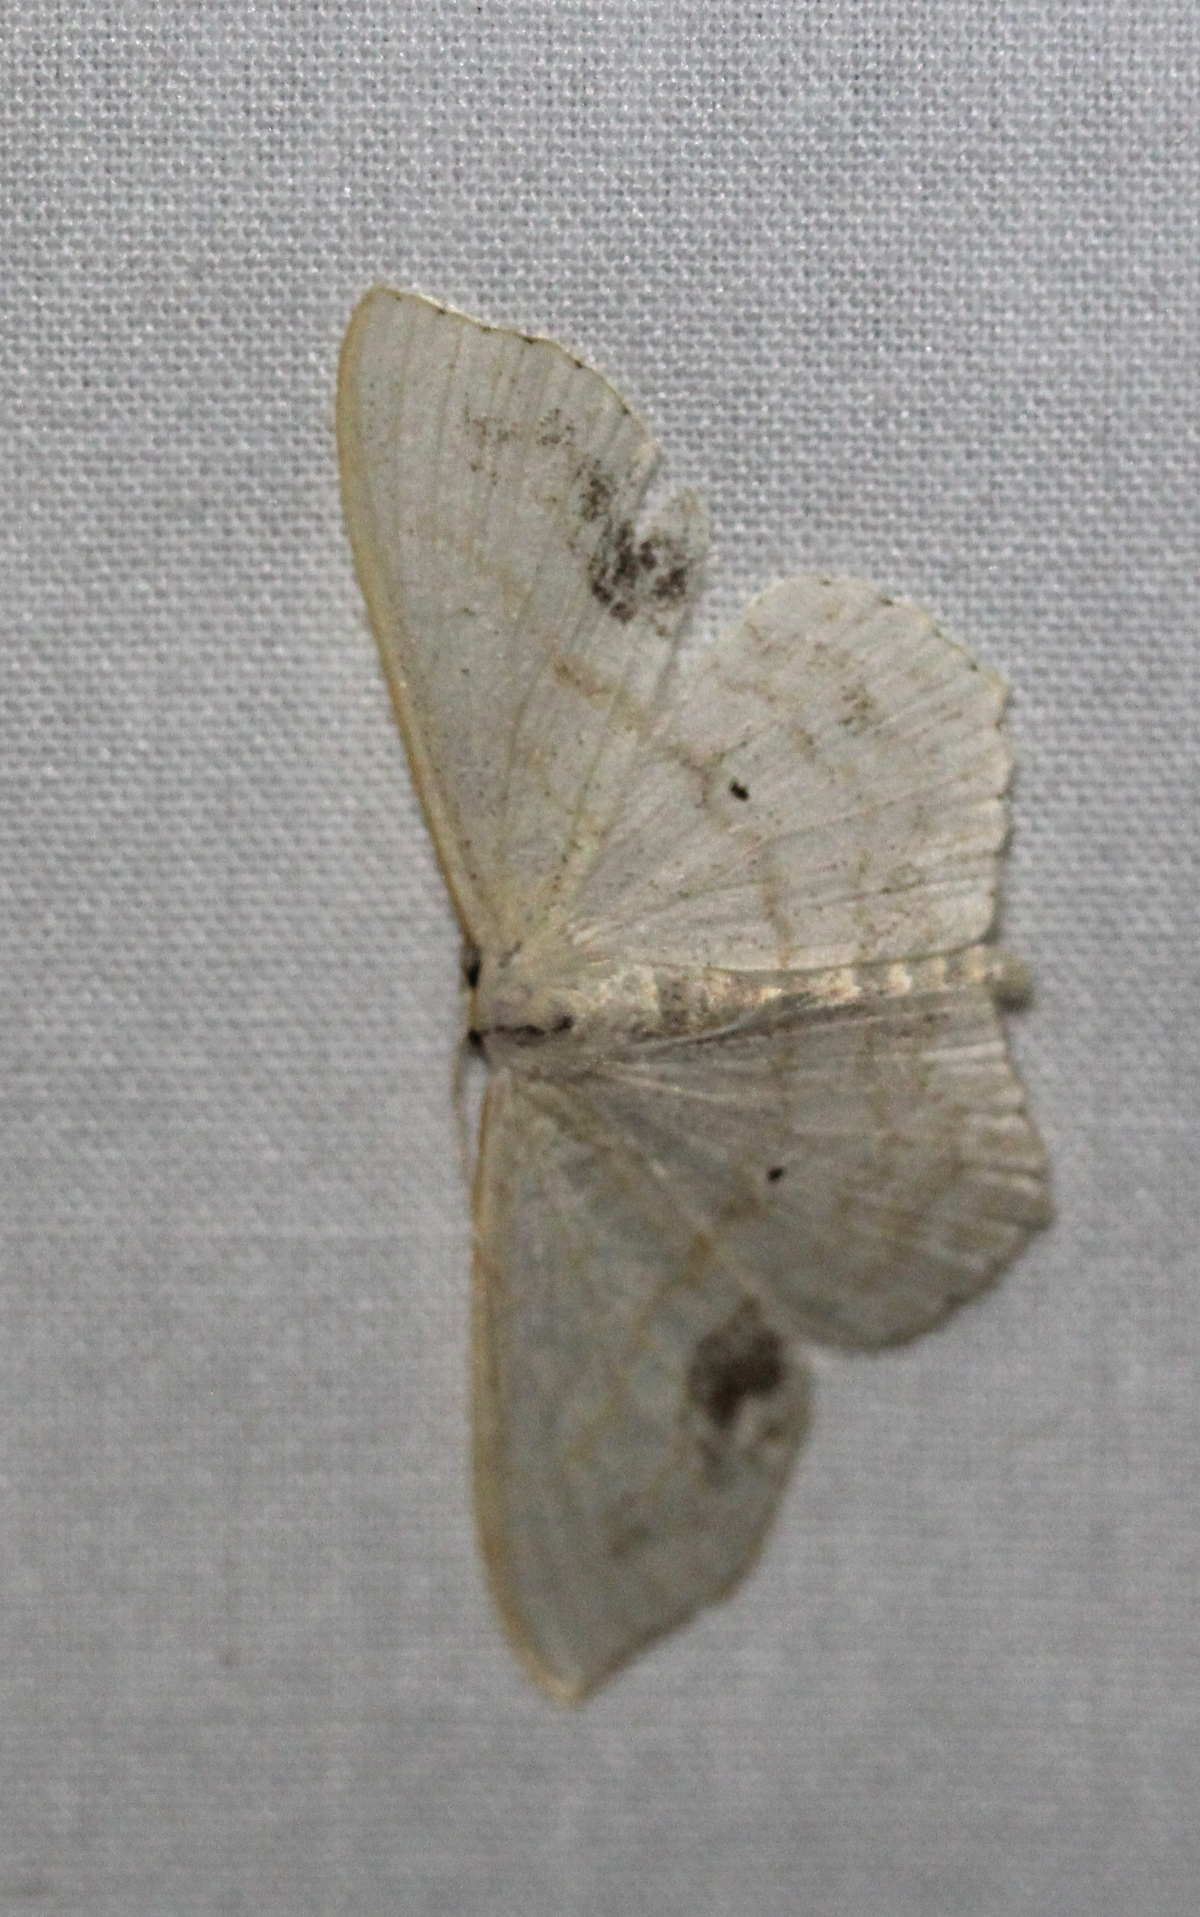 mostly white moth, wings spread, white sheet background